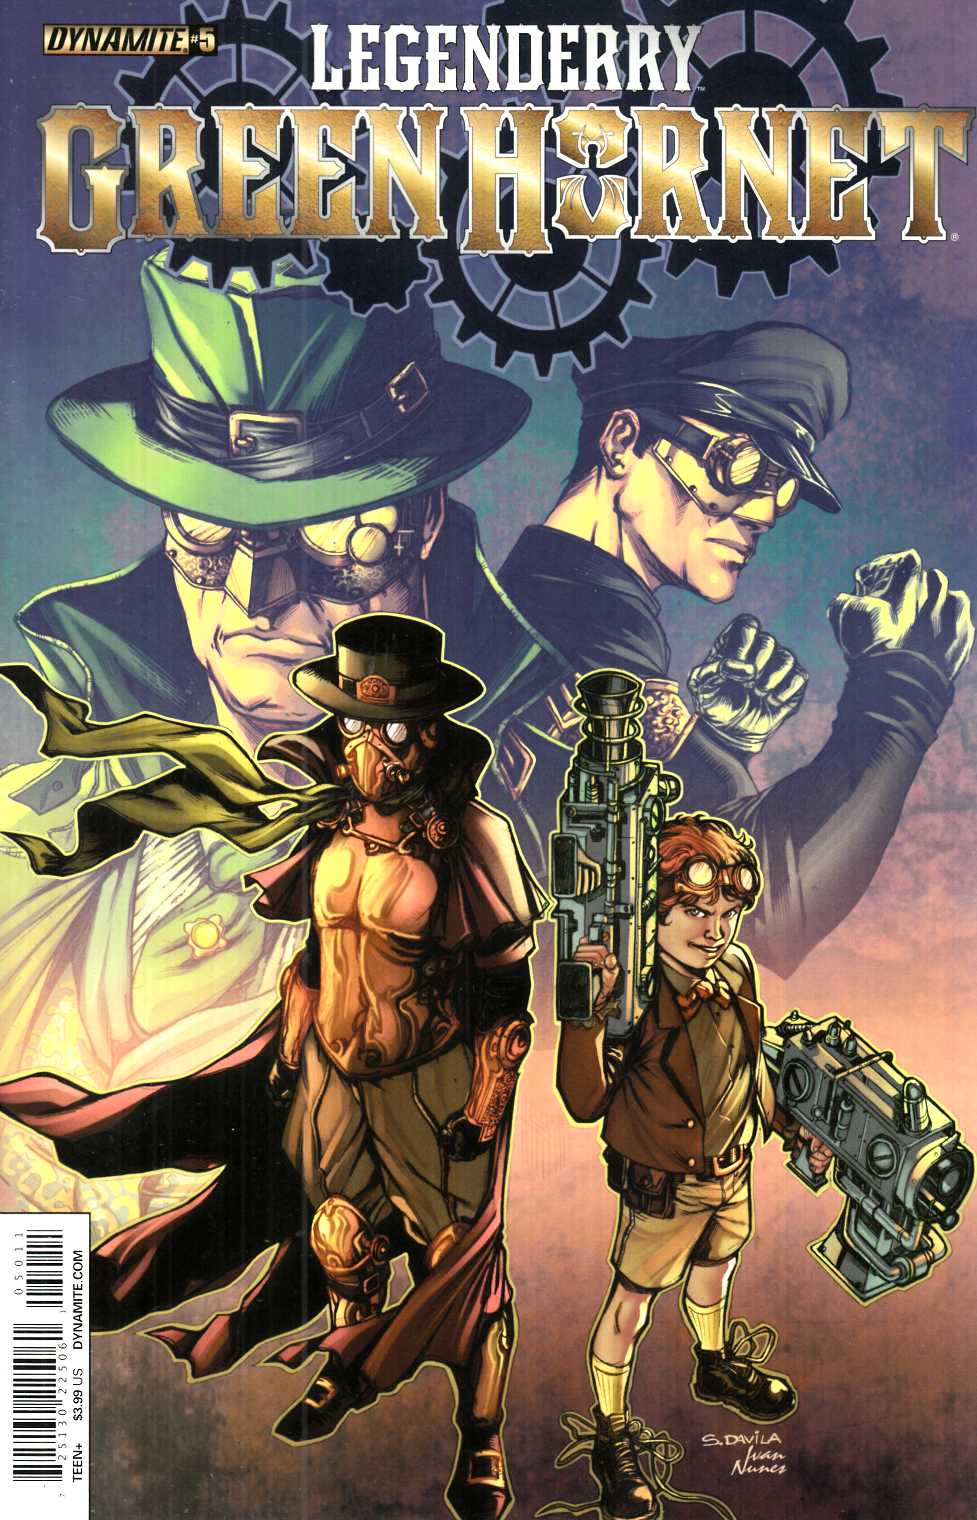 Legenderry Green Hornet #5 [Dynamite Comic]